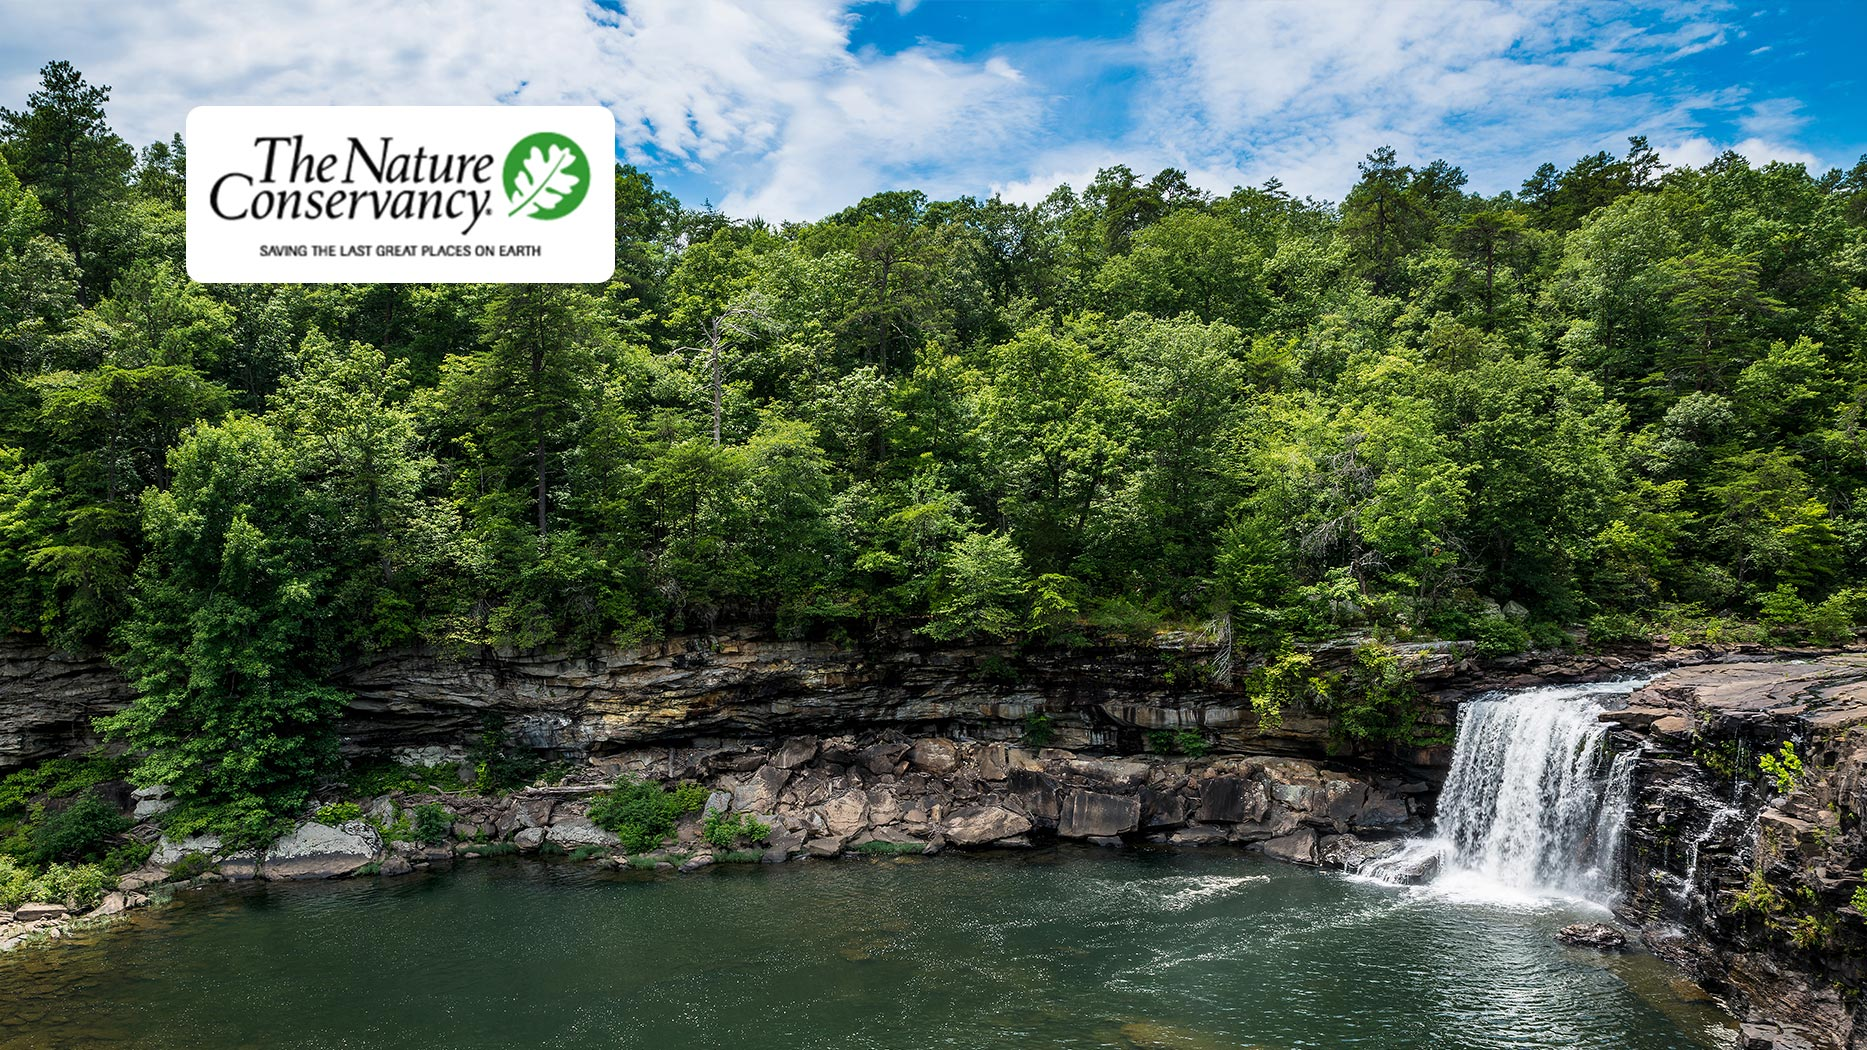 nature conservancy swimming alabama state nc holes insider vacation canyon river photographs every hainer rob shutterstock field features site collection